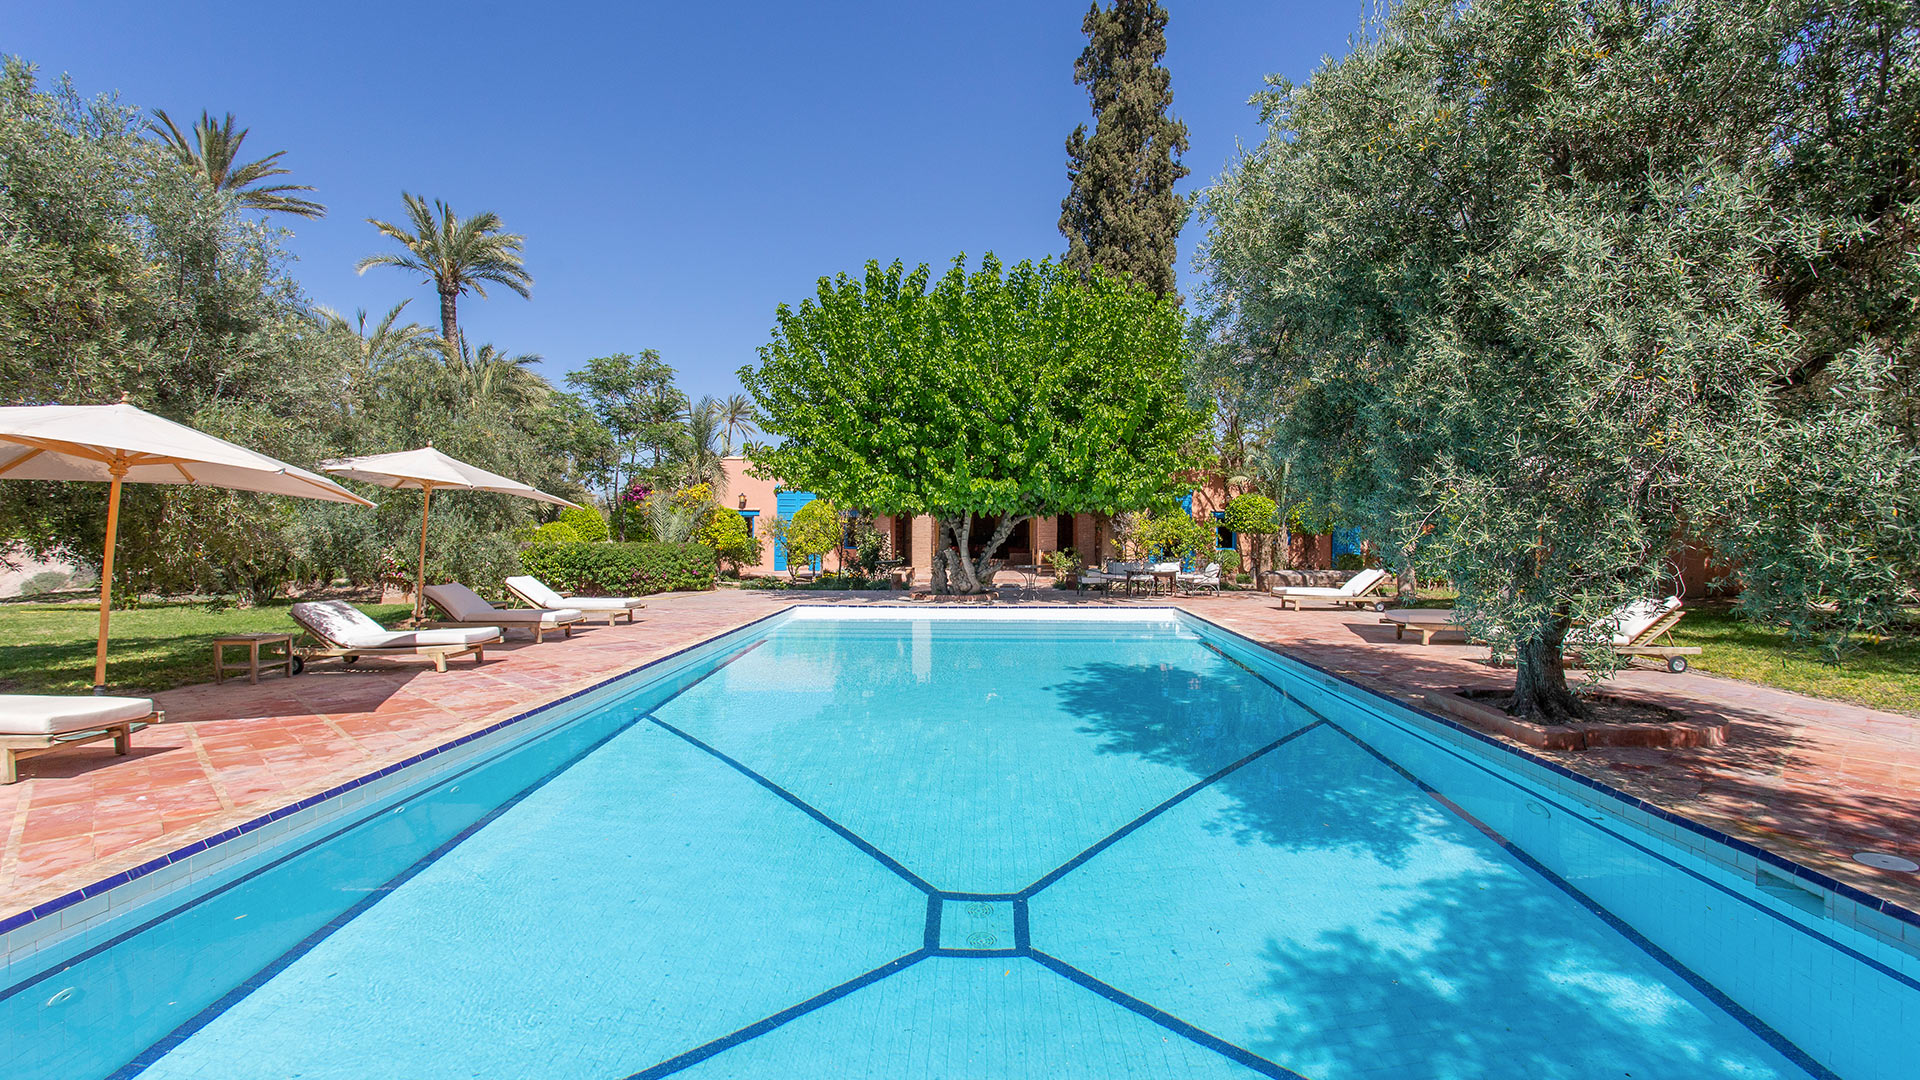 Villa Jnane Rommane, Rental in Marrakech